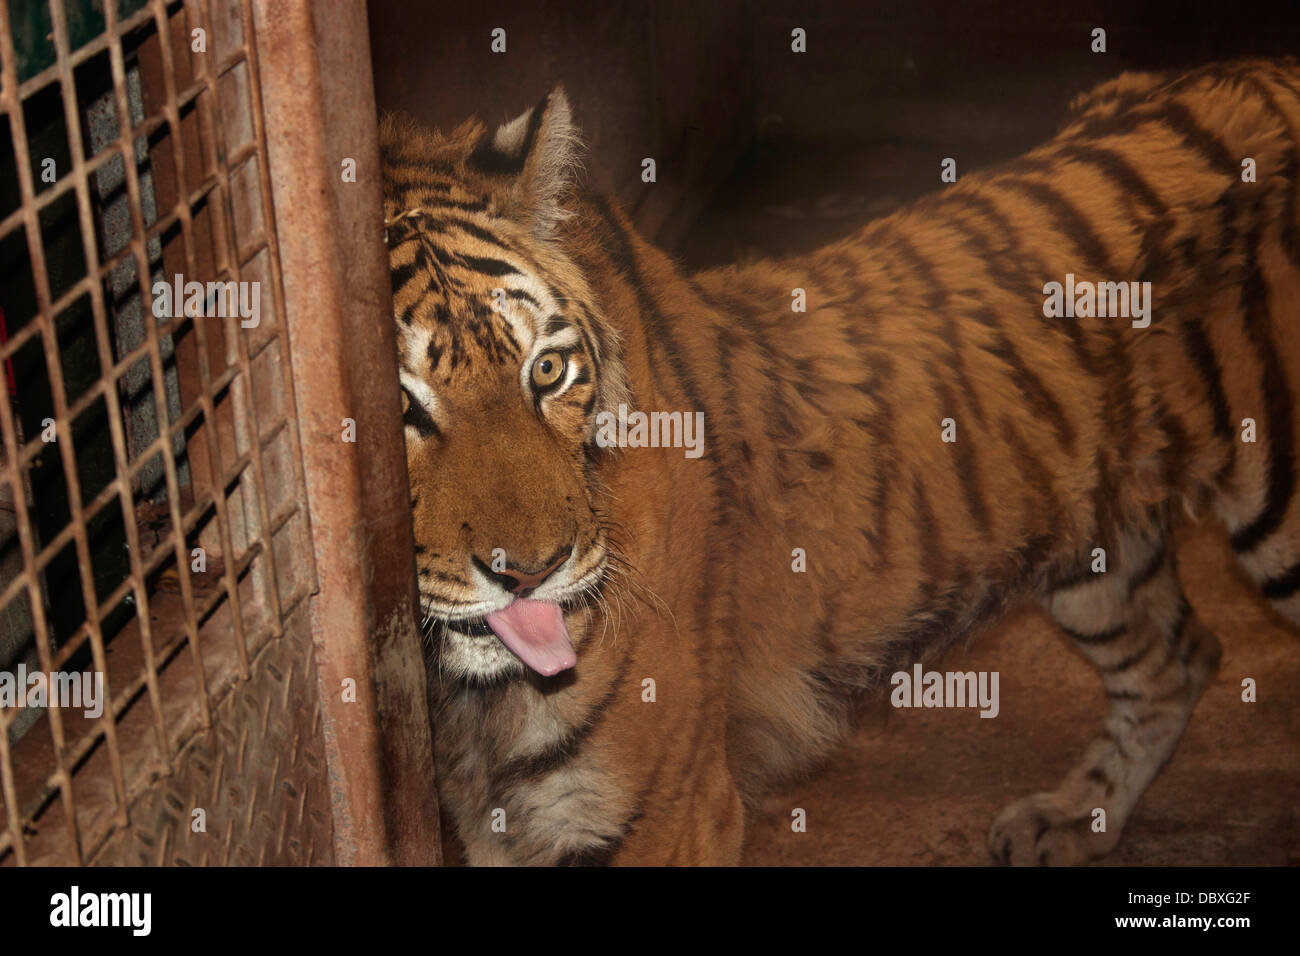 Old and underweight Tiger being kept in captivity Stock Photo